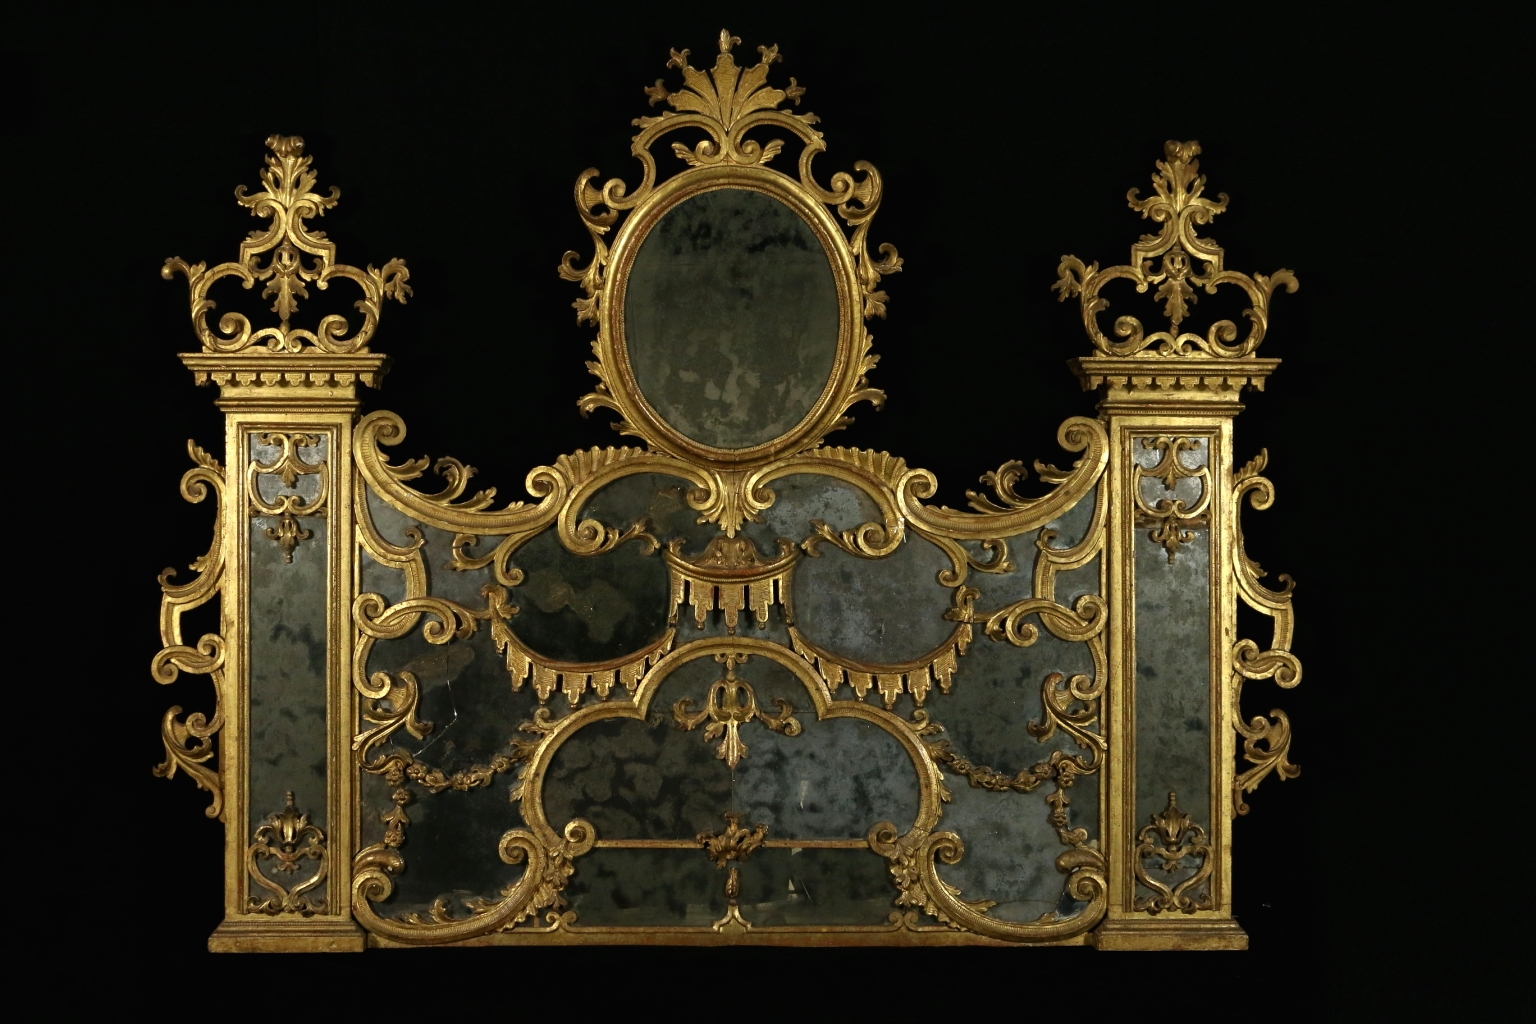 Antique Baroque Linden Carved And Gilded Hearth Mirror For Sale At Within Antique Gilded Mirror (Image 4 of 15)